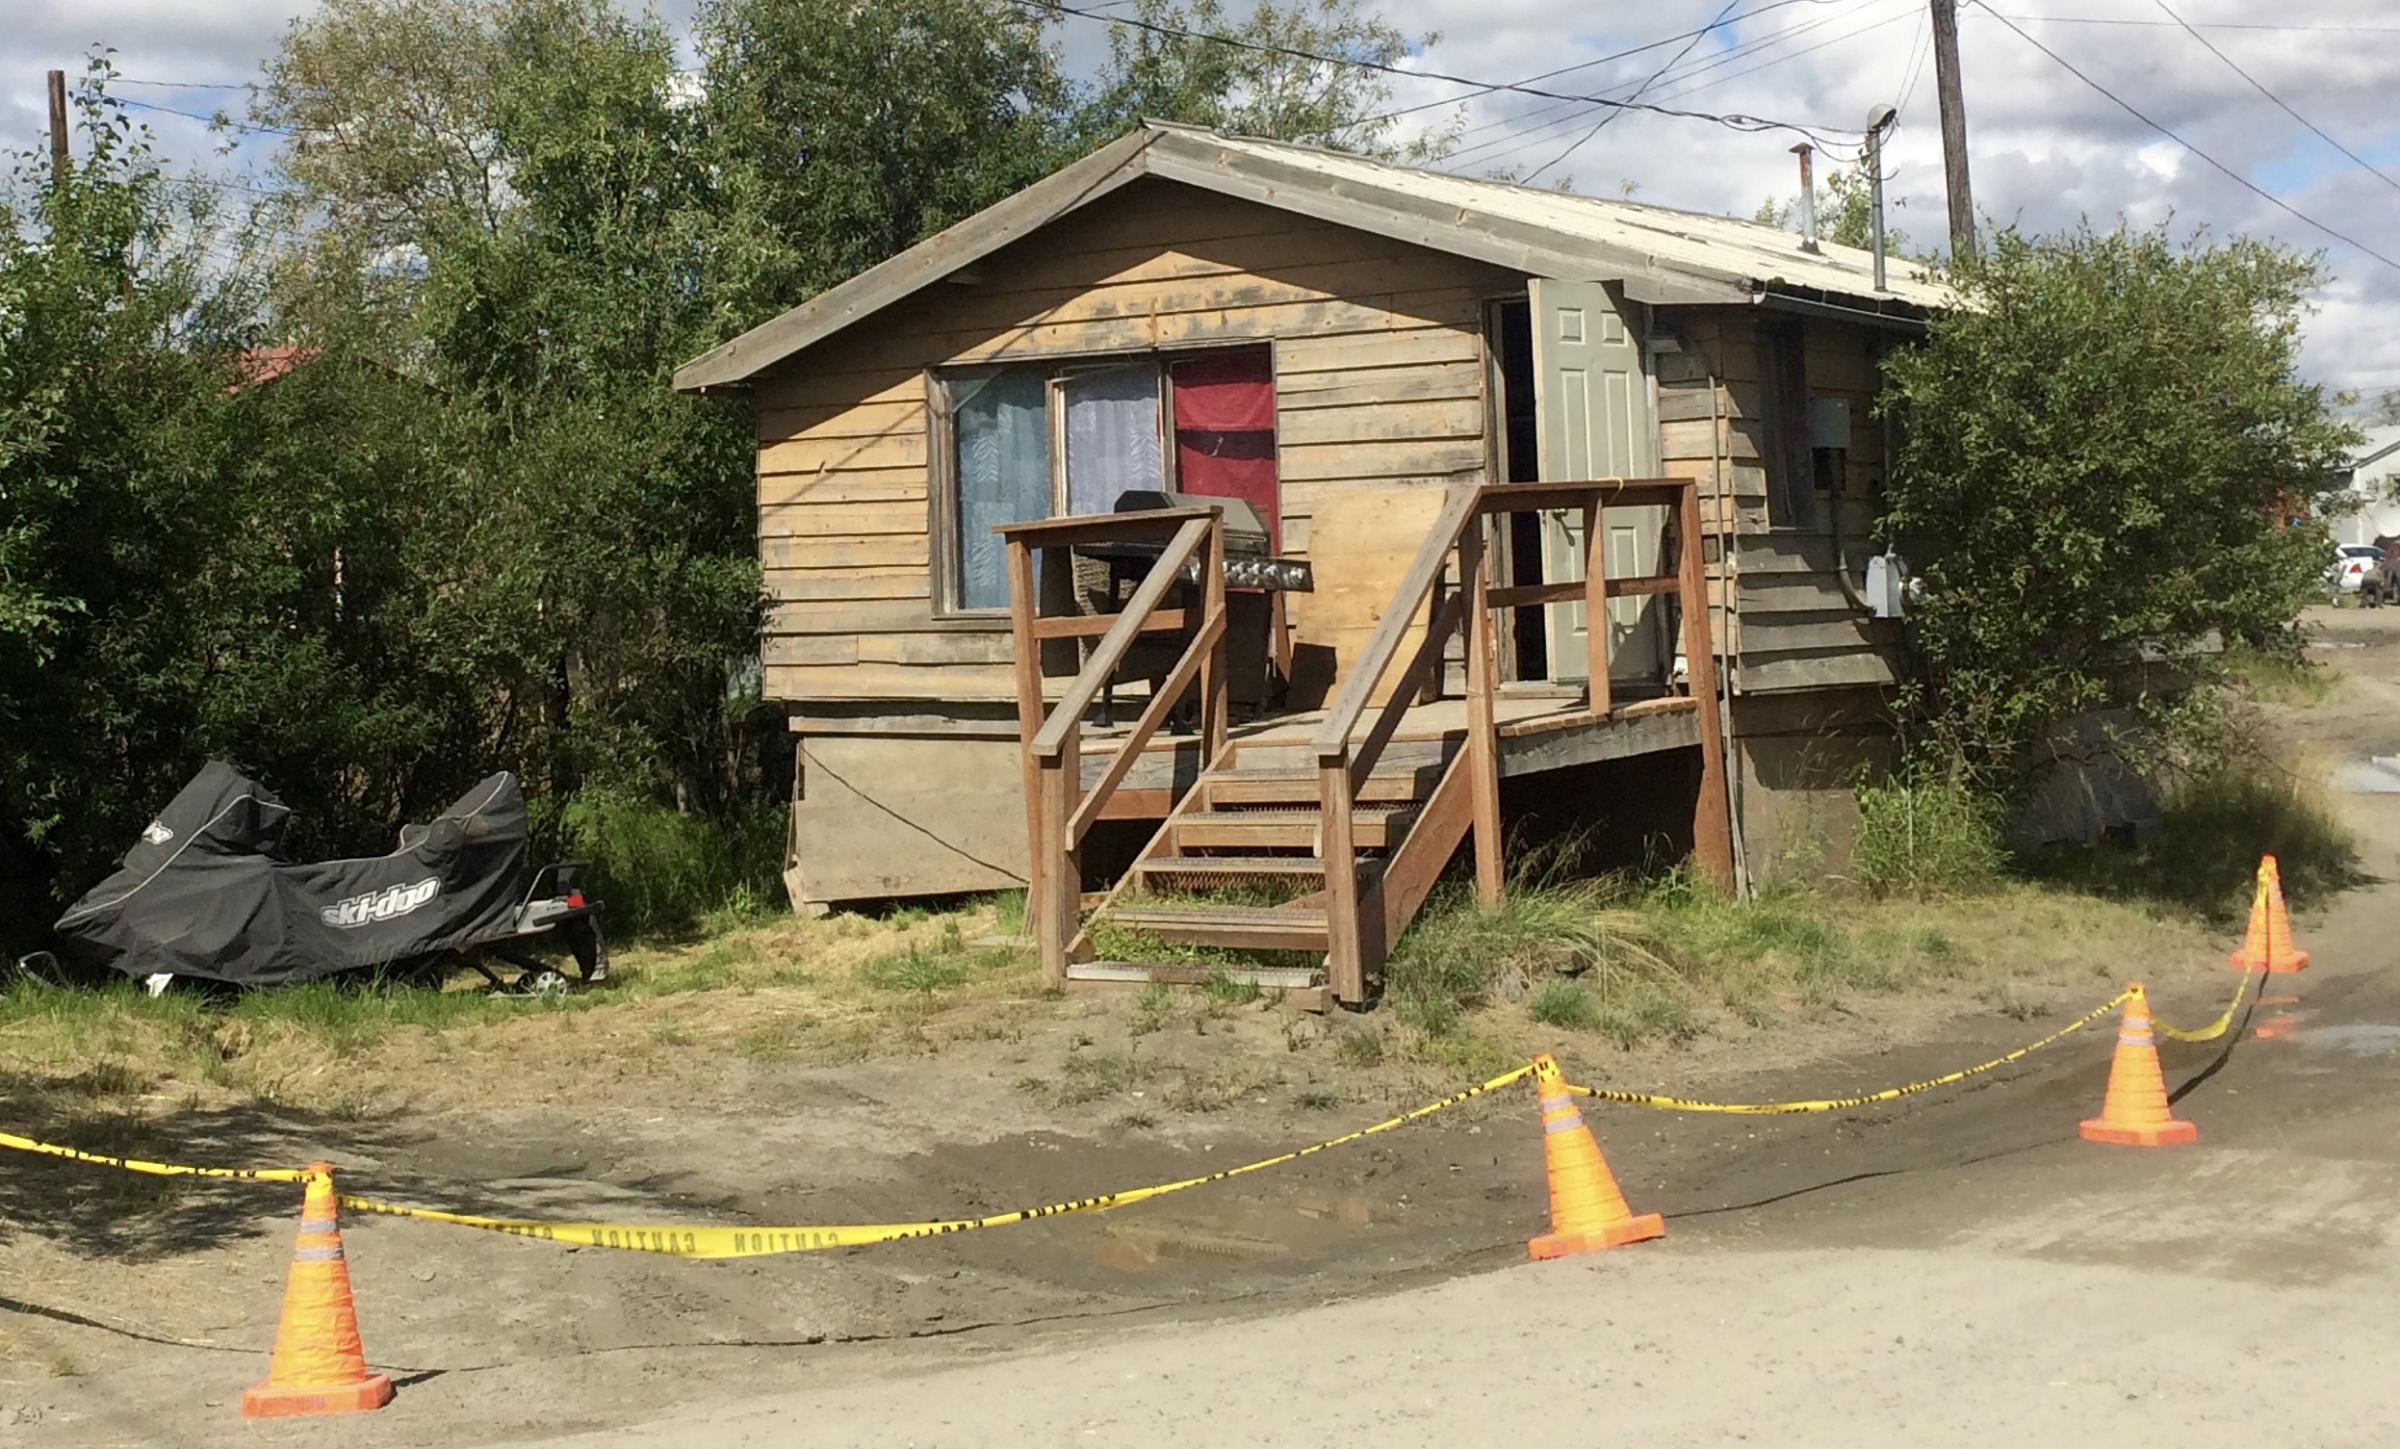 Yellow caution tape surrounds an alleged crime scene at 840 Jacobs Way, Bethel, where Jason Joseph Lupie is accused of murdering his wife, Marie Beebe Lupie. (Photo by Anna Rose MacArthur/KYUK)